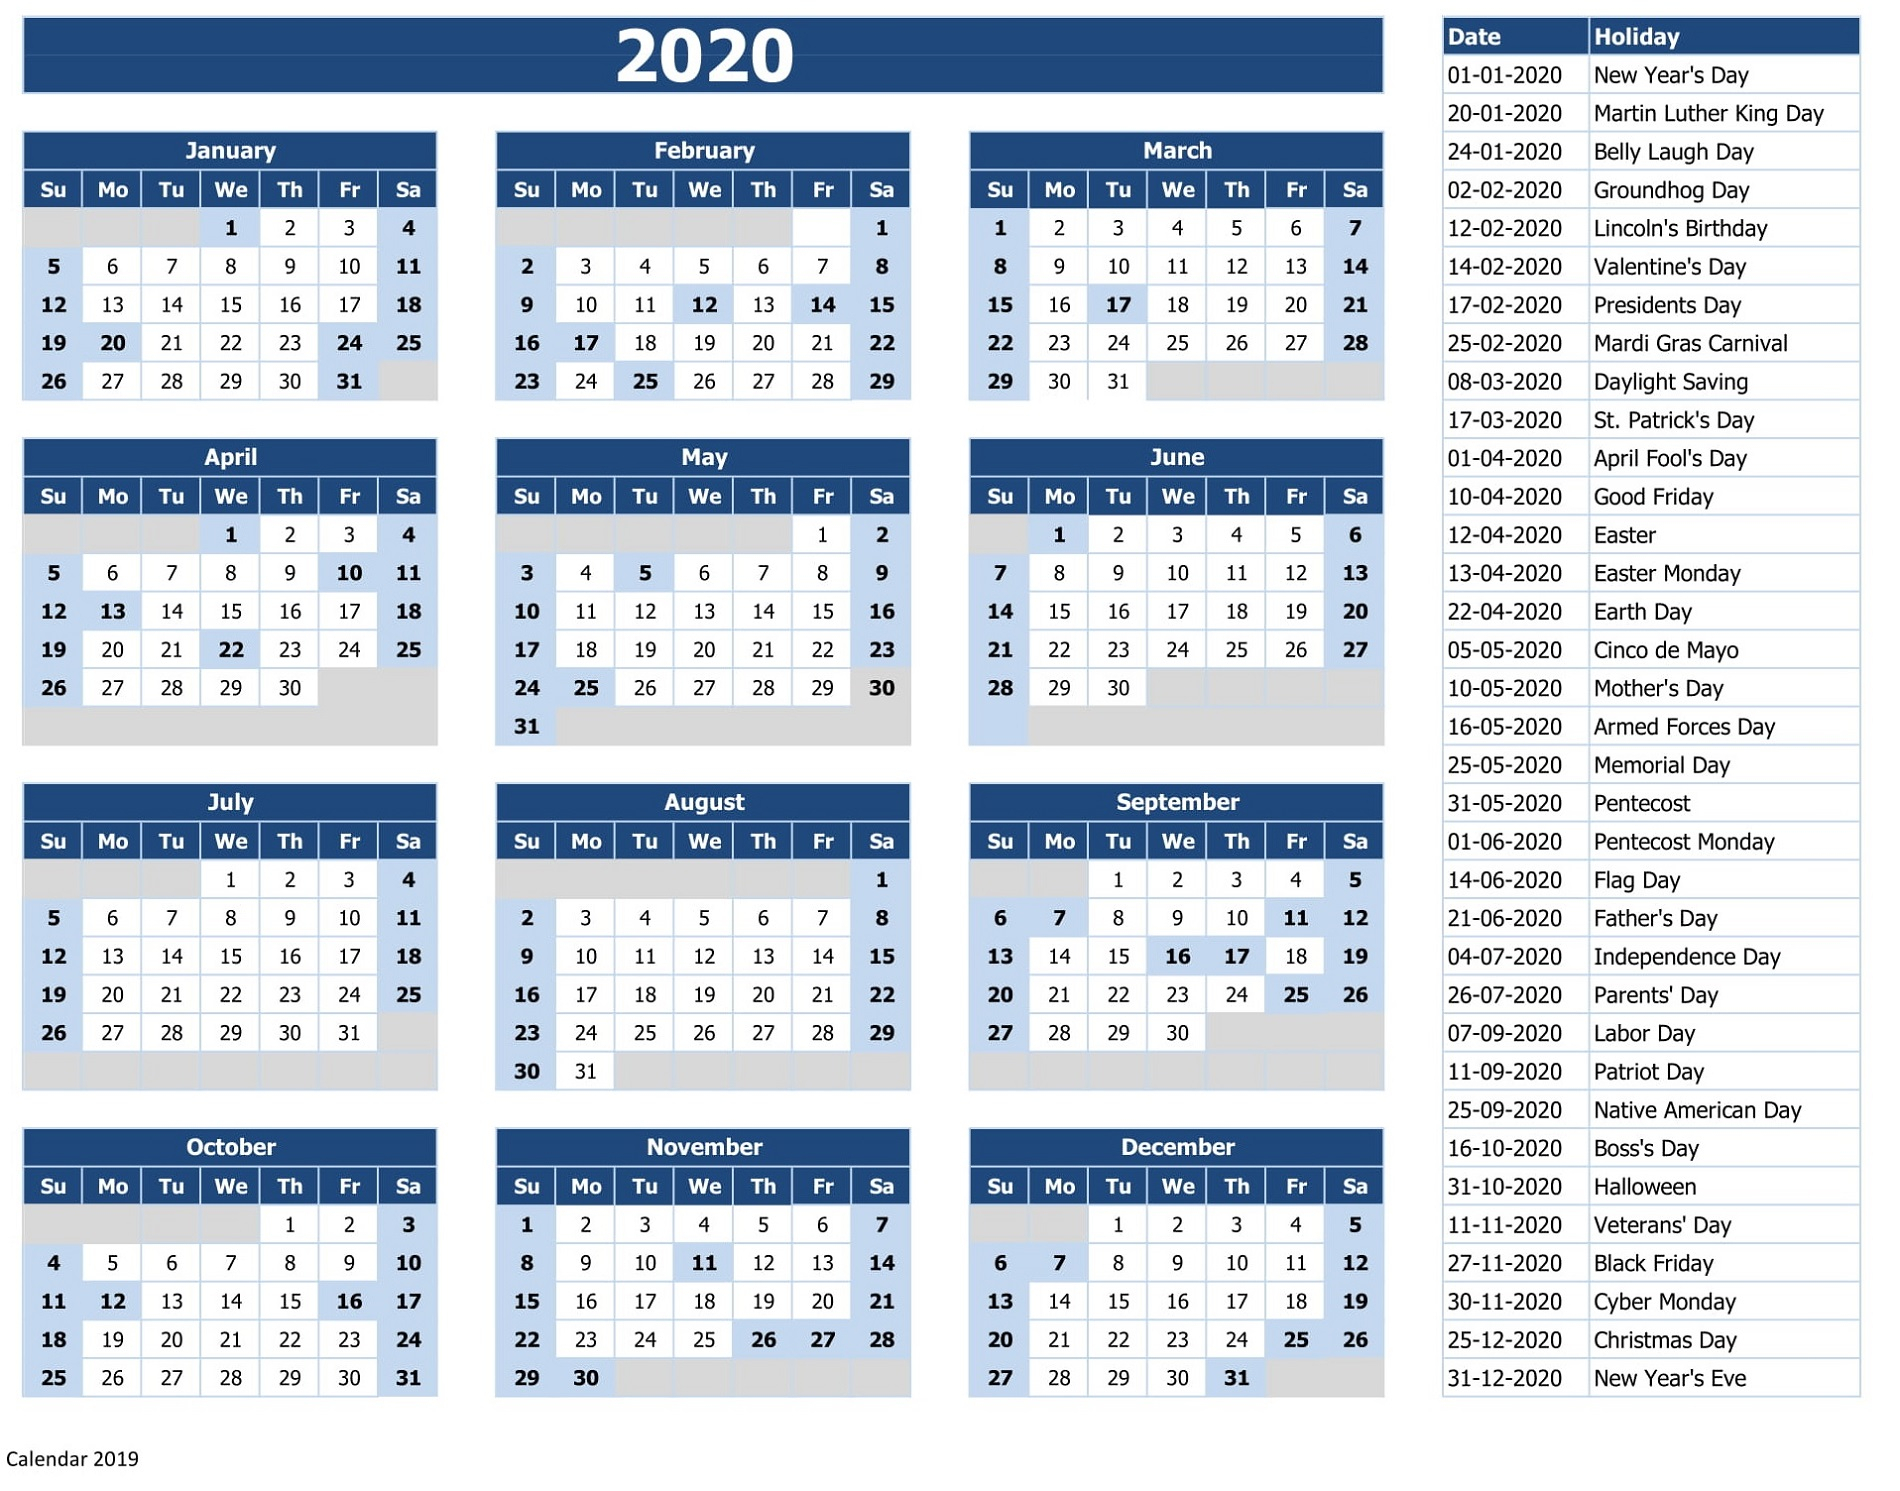 Calendar 2020 With Holidays Excel - Colona.rsd7